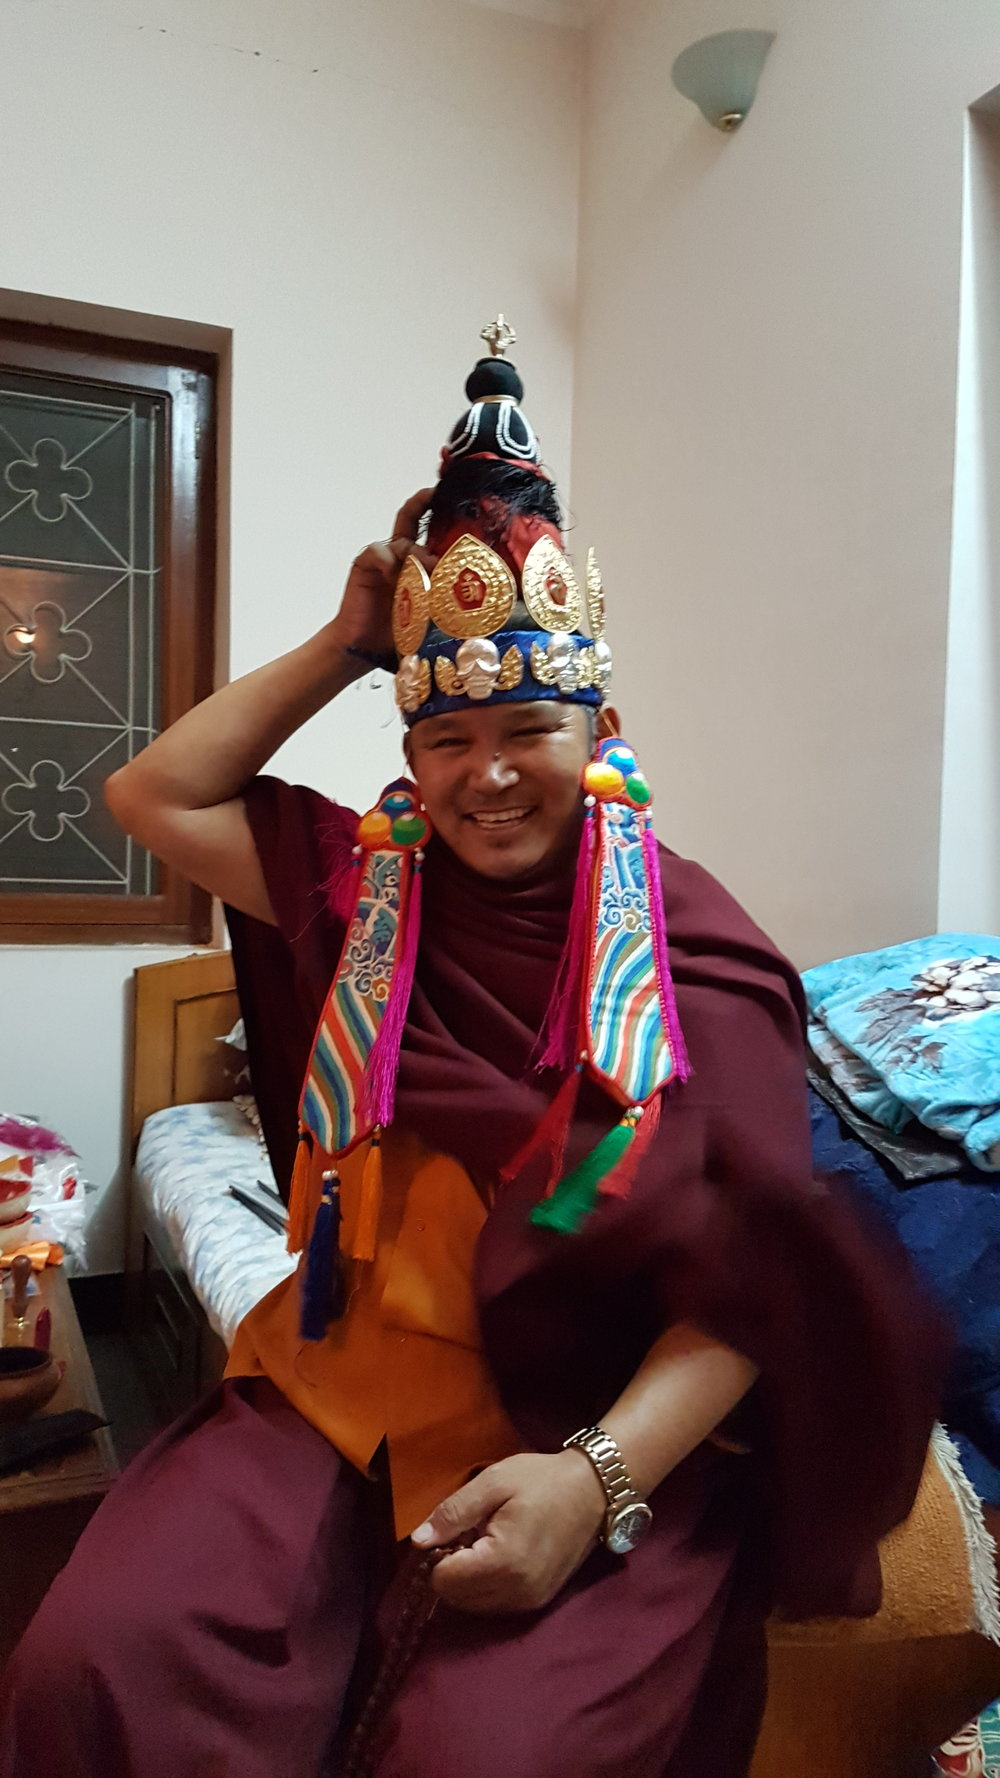 Tulku Thadral trying it on